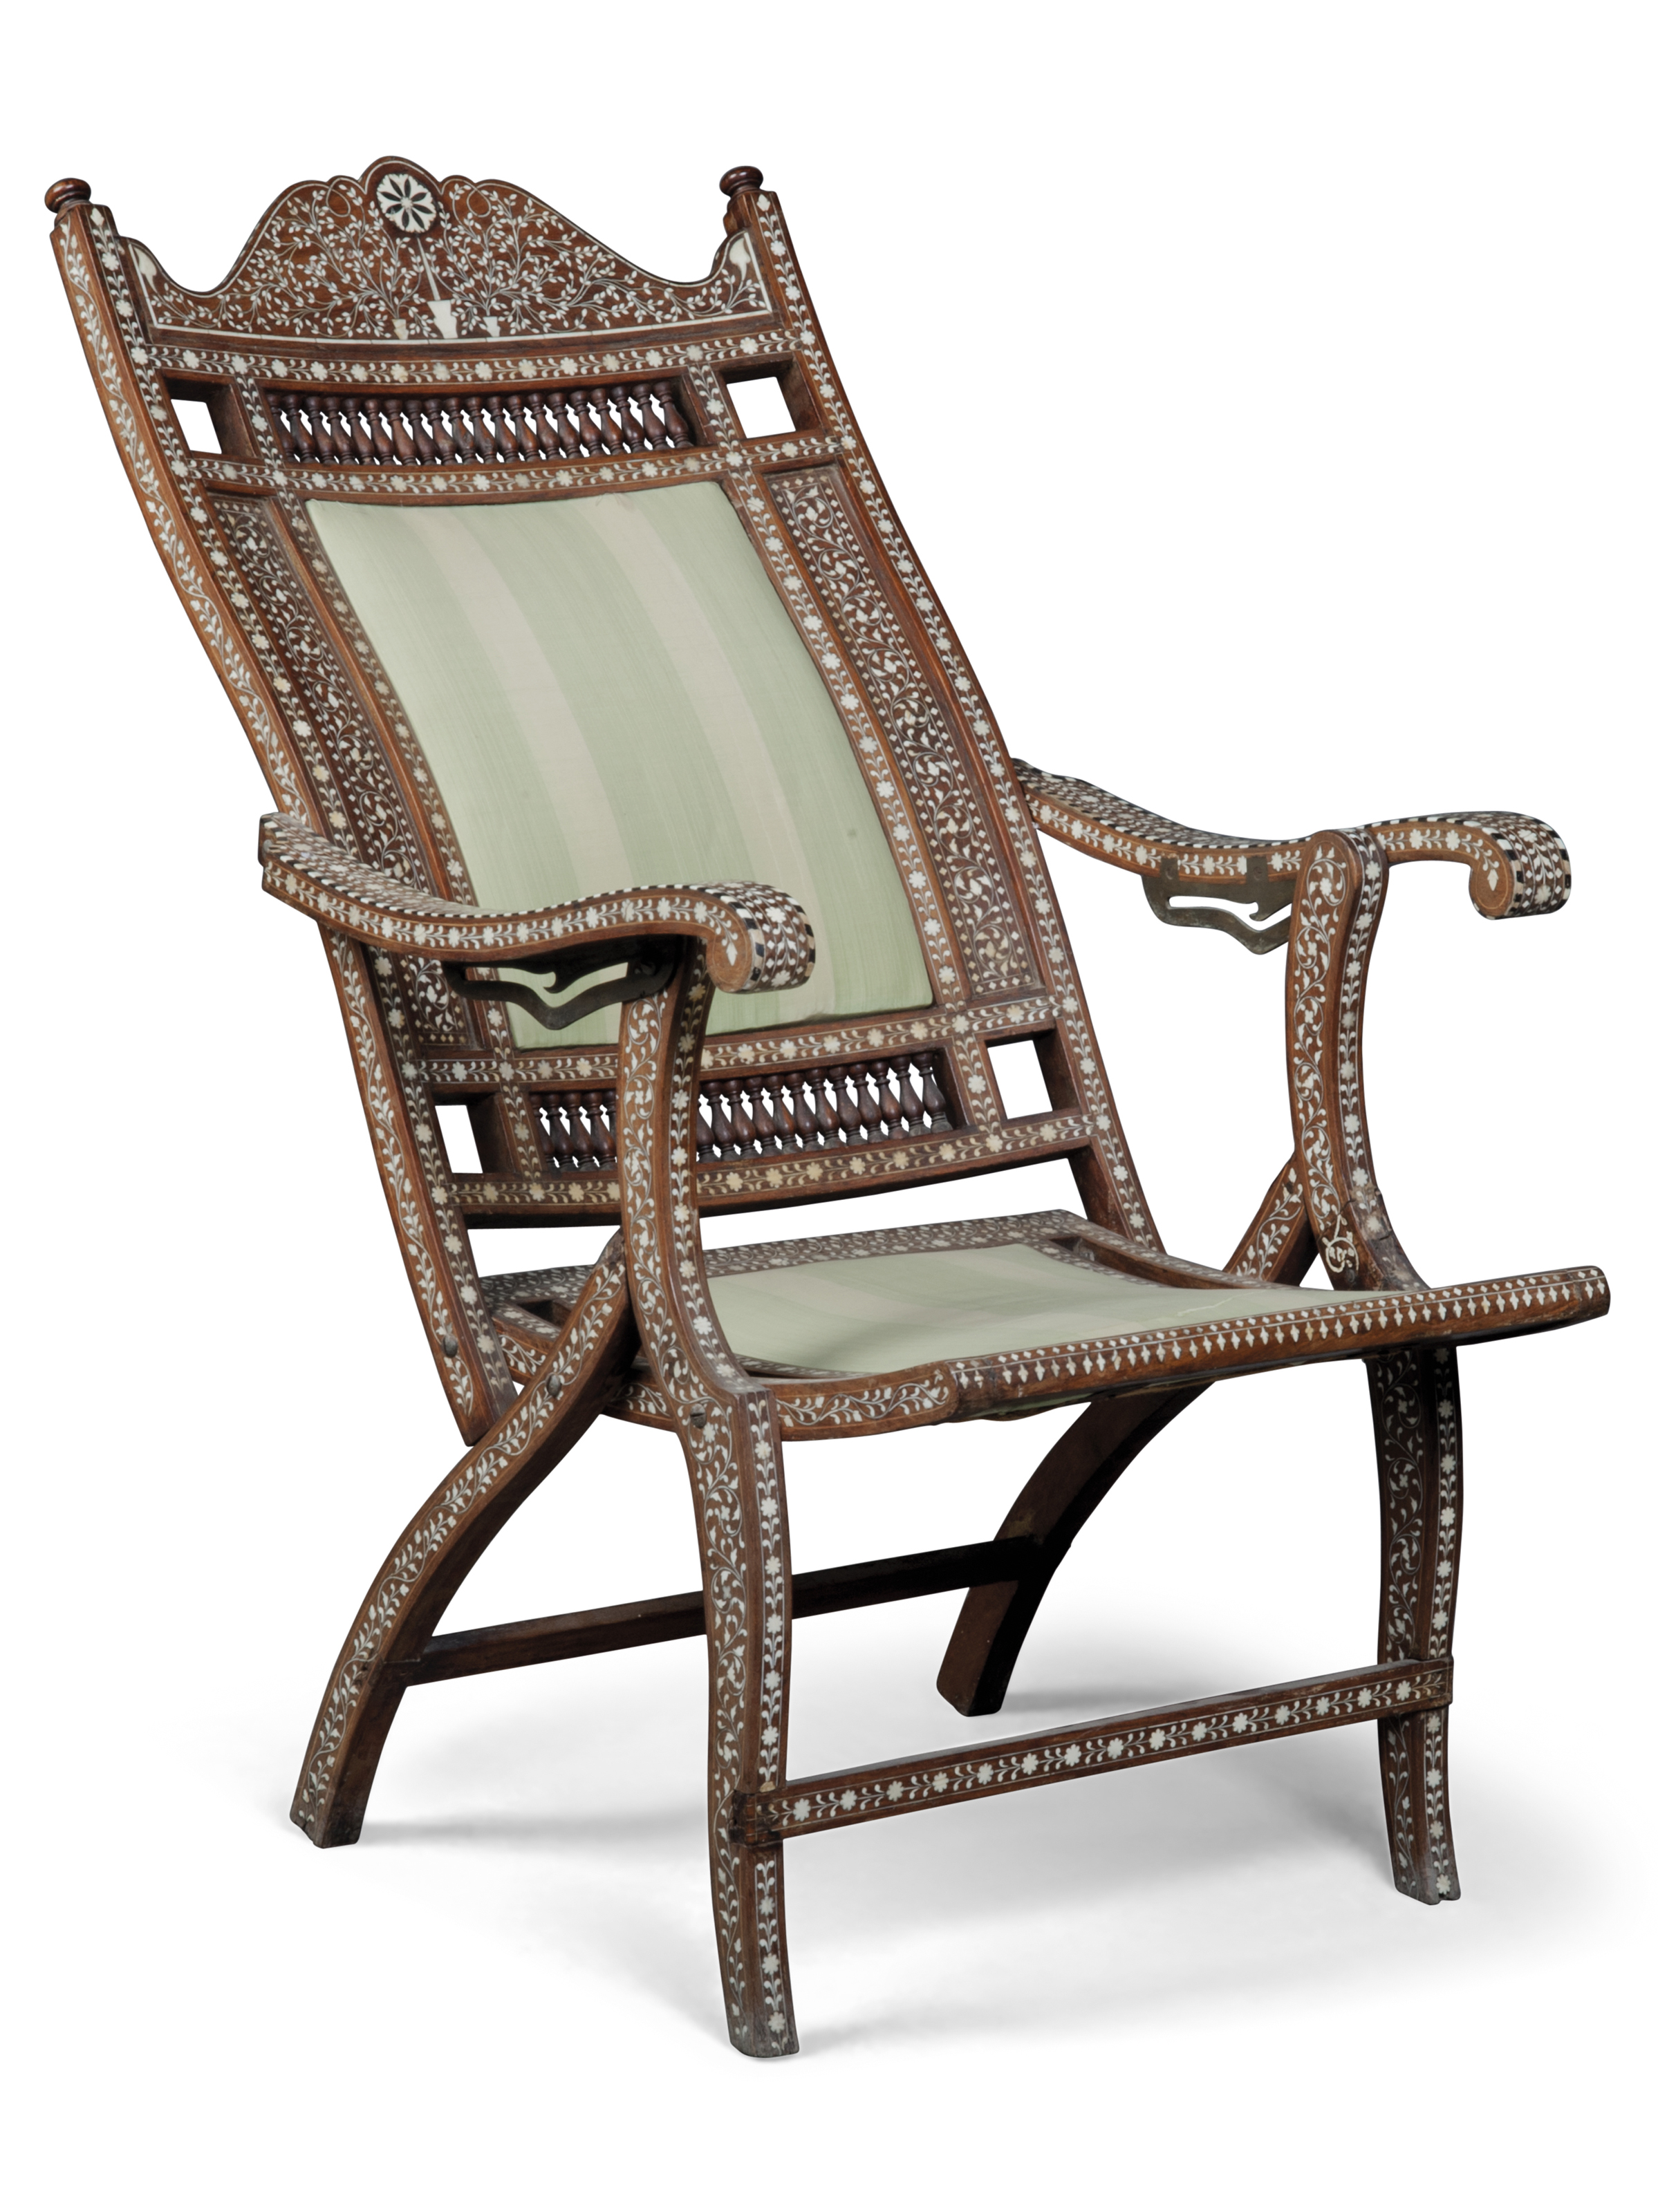 AN INDIAN EBONY AND BONE INLAID TEAK AND CANED PLANTER S CHAIR AND